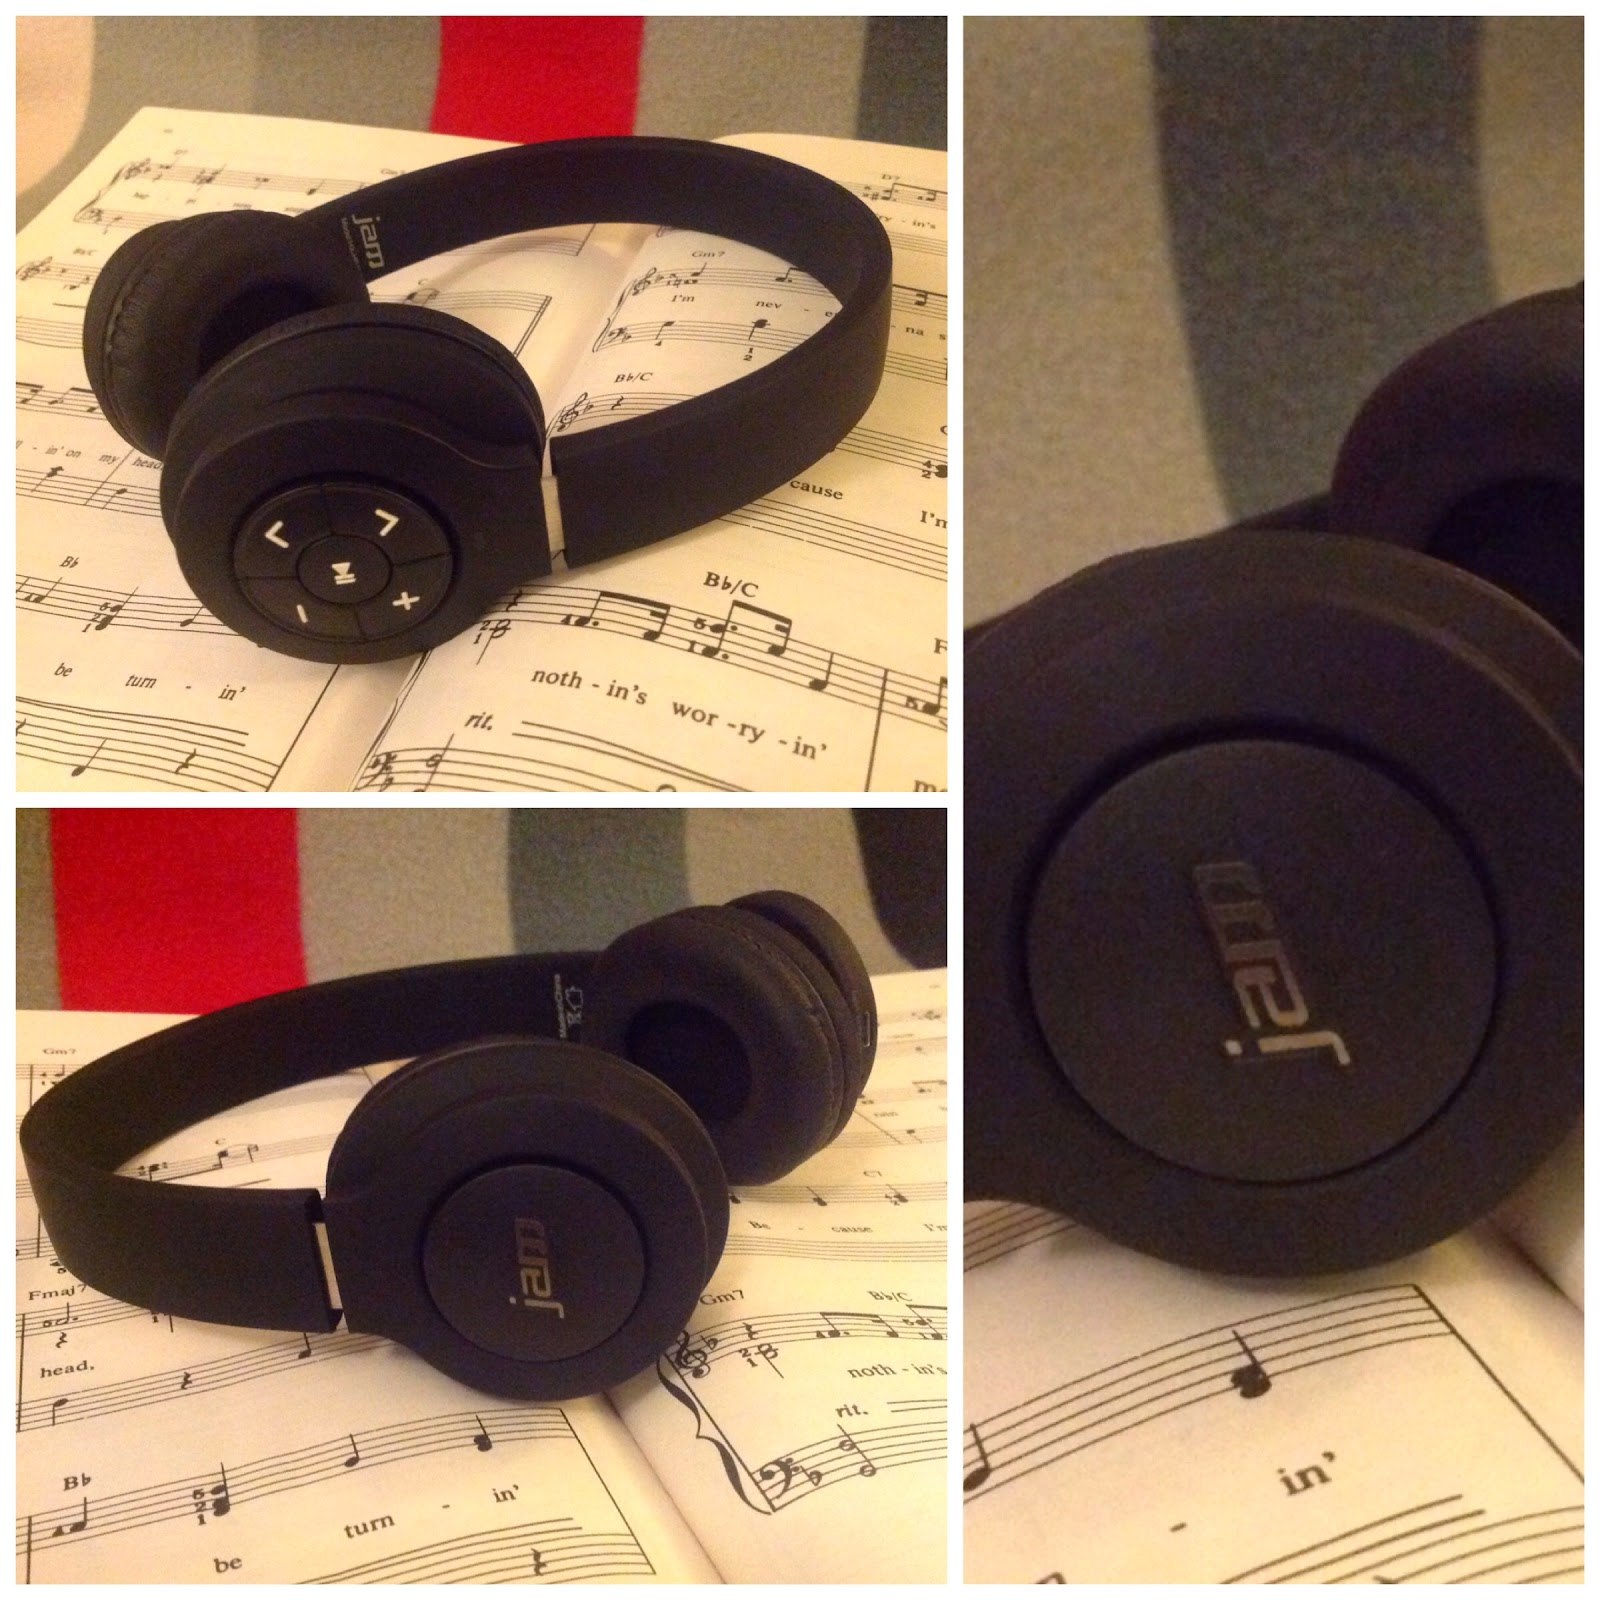 Collage of Jam Audio bluetooth headphones